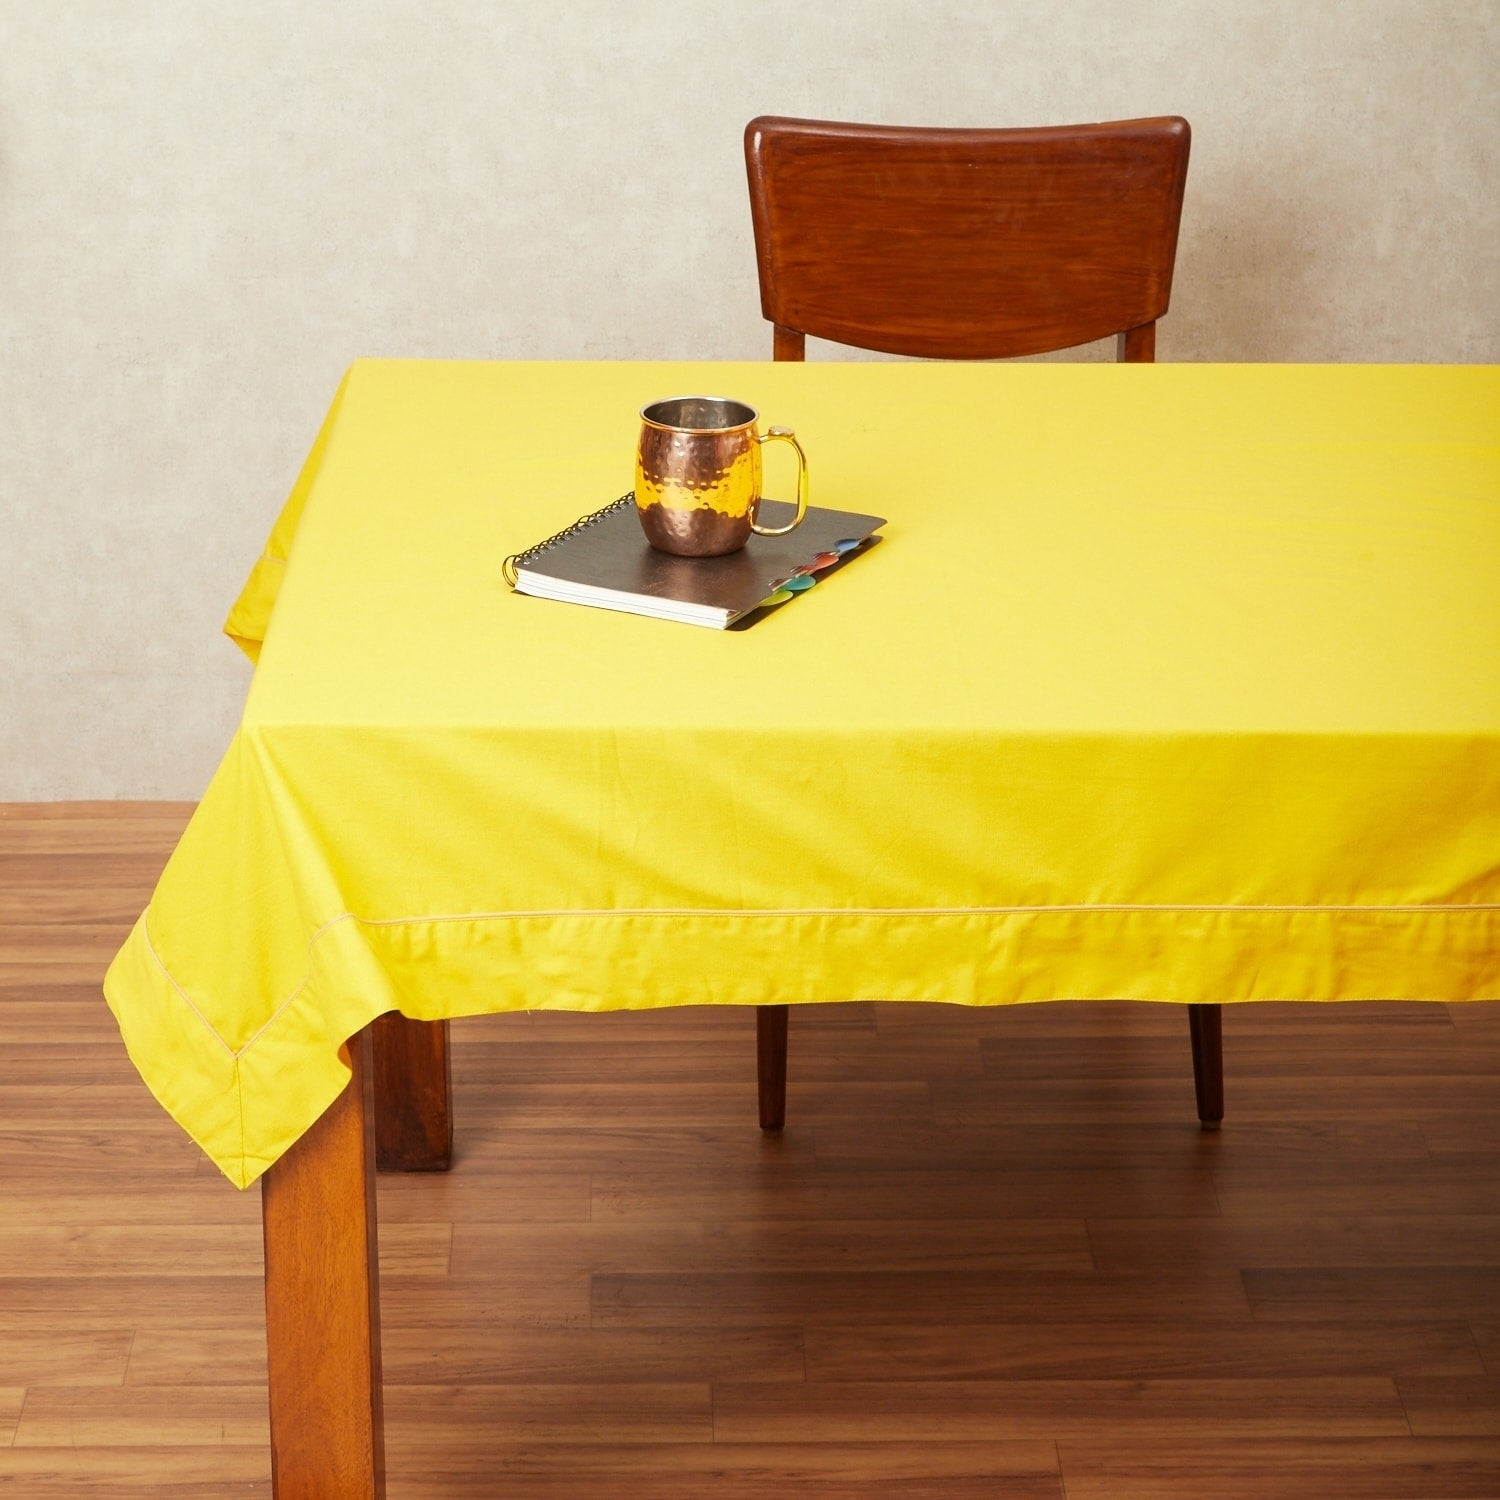 In-Sattva Home 100% Cotton Solid Color Soft Feel Washable Rectangular Table Cover Cloth (24 Inches - Mustard)